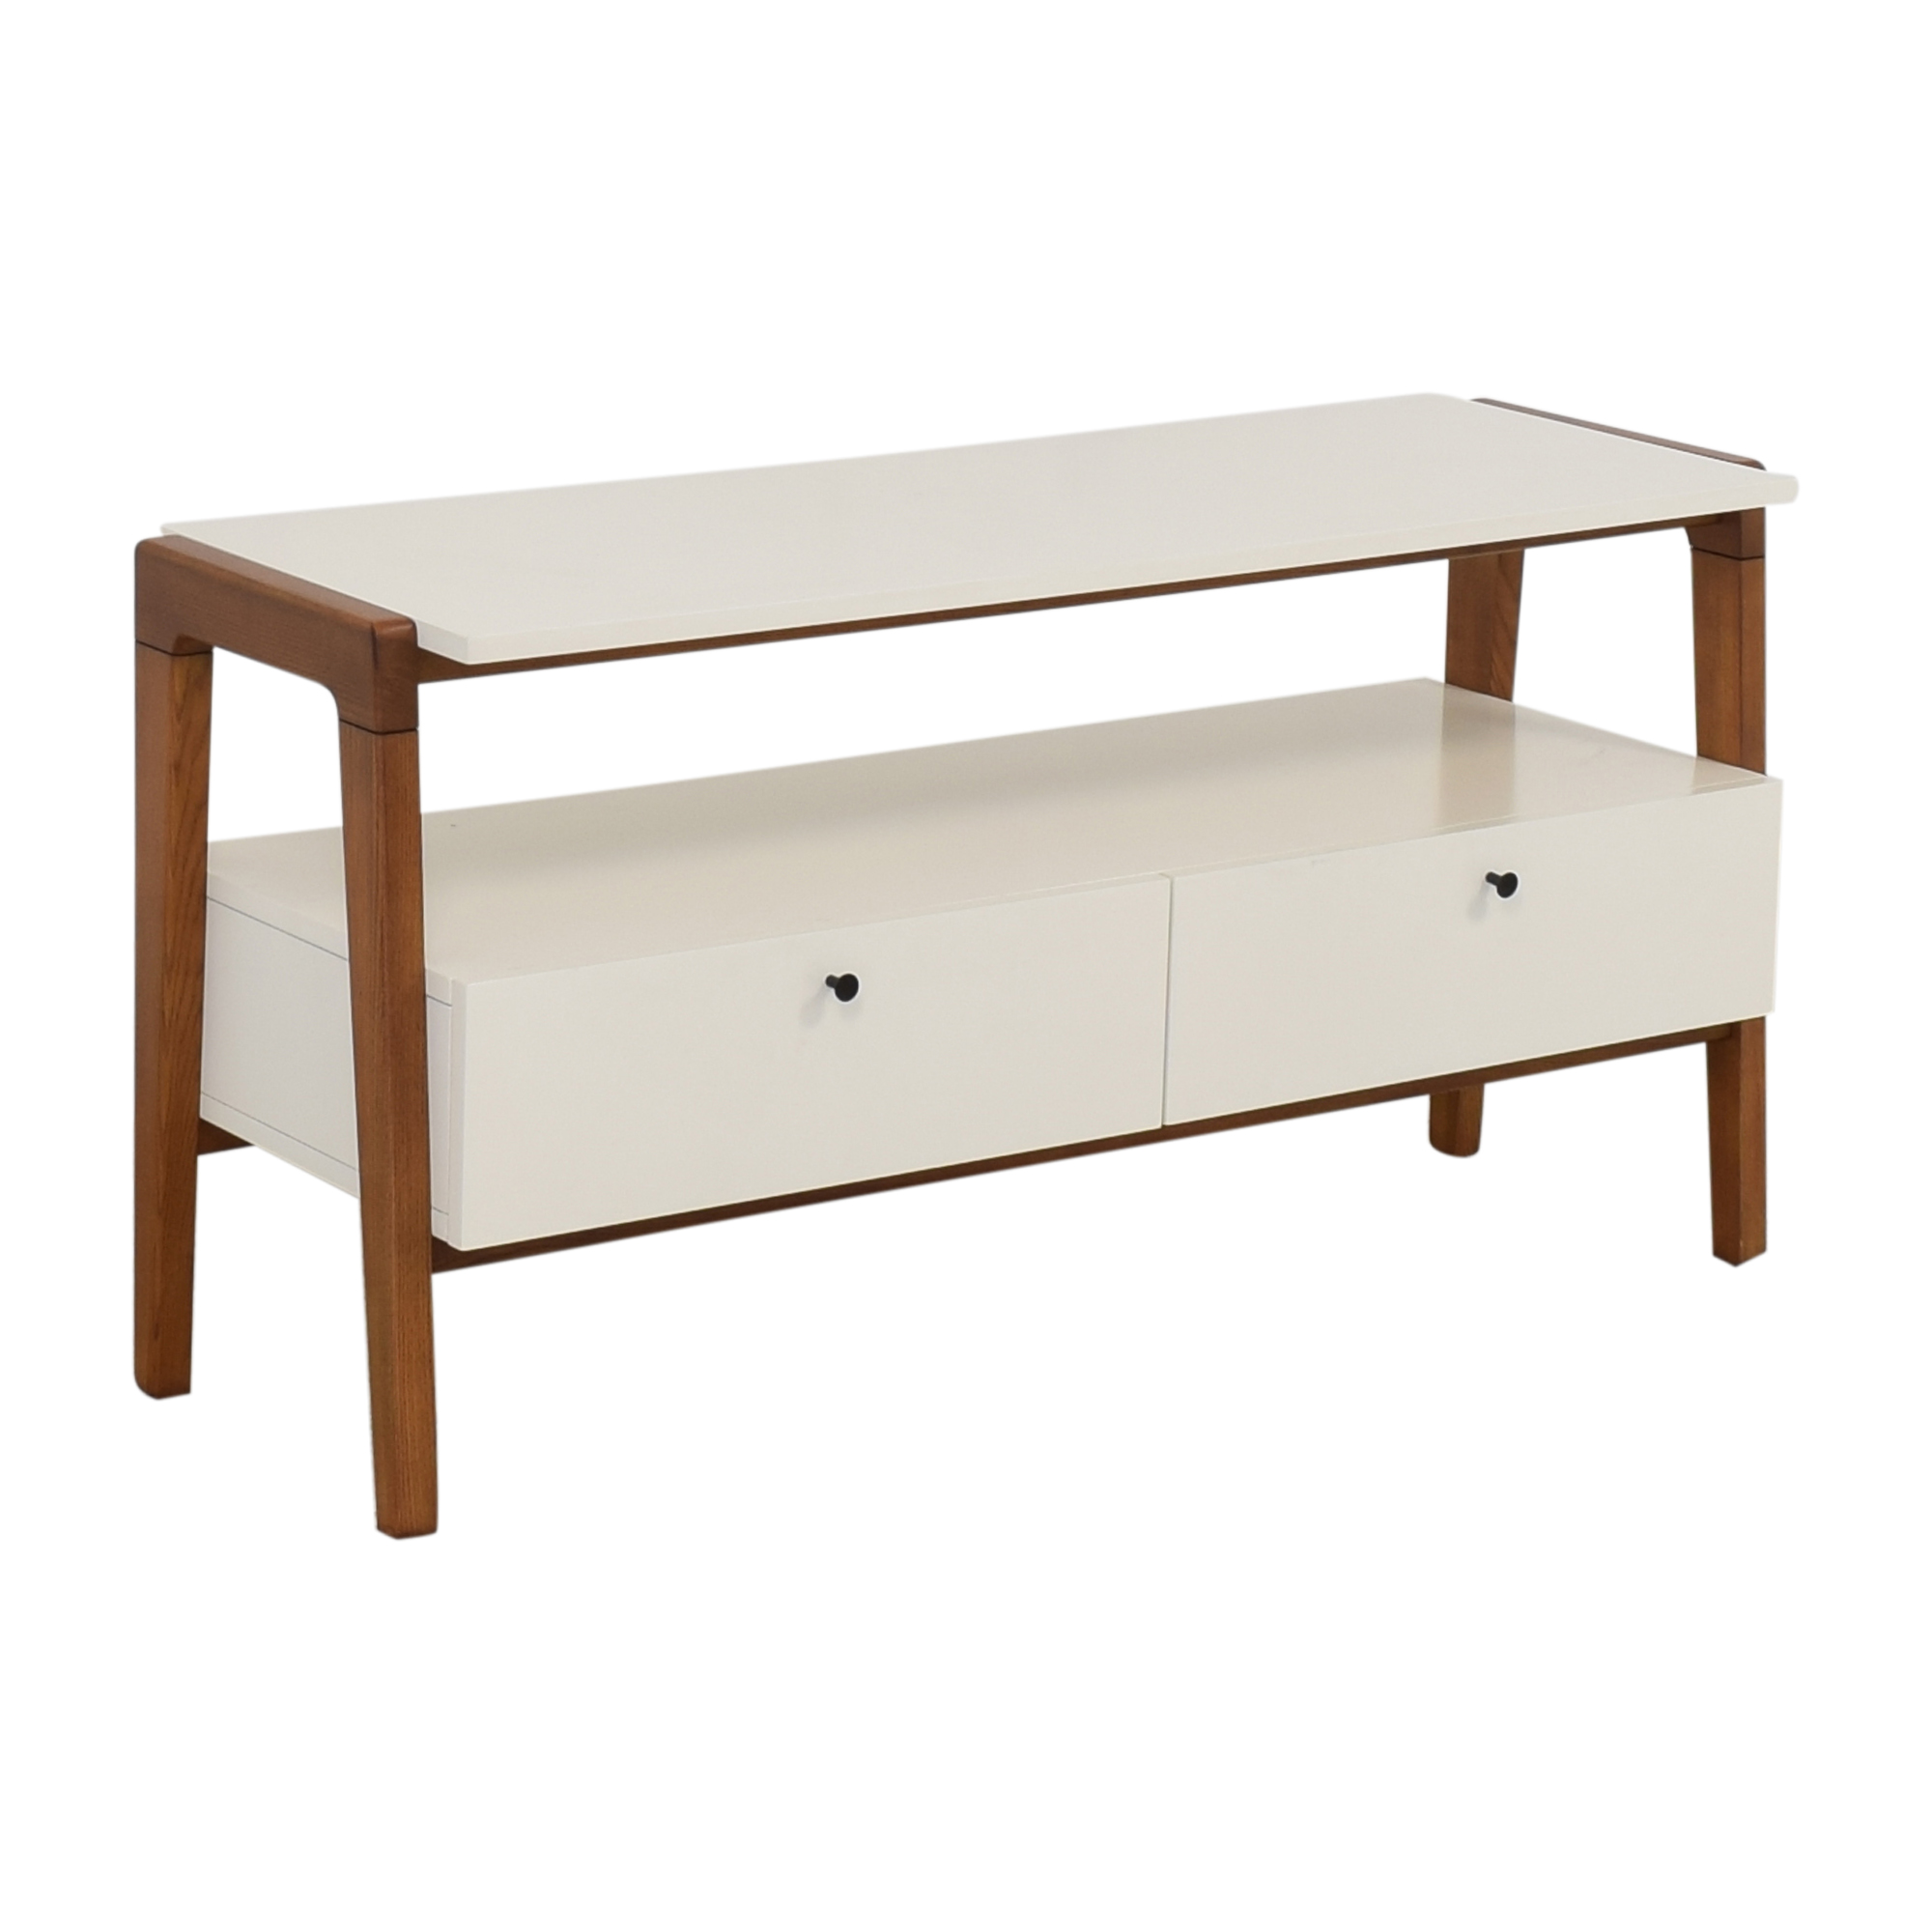 West Elm West Elm Modern Media Console white & brown